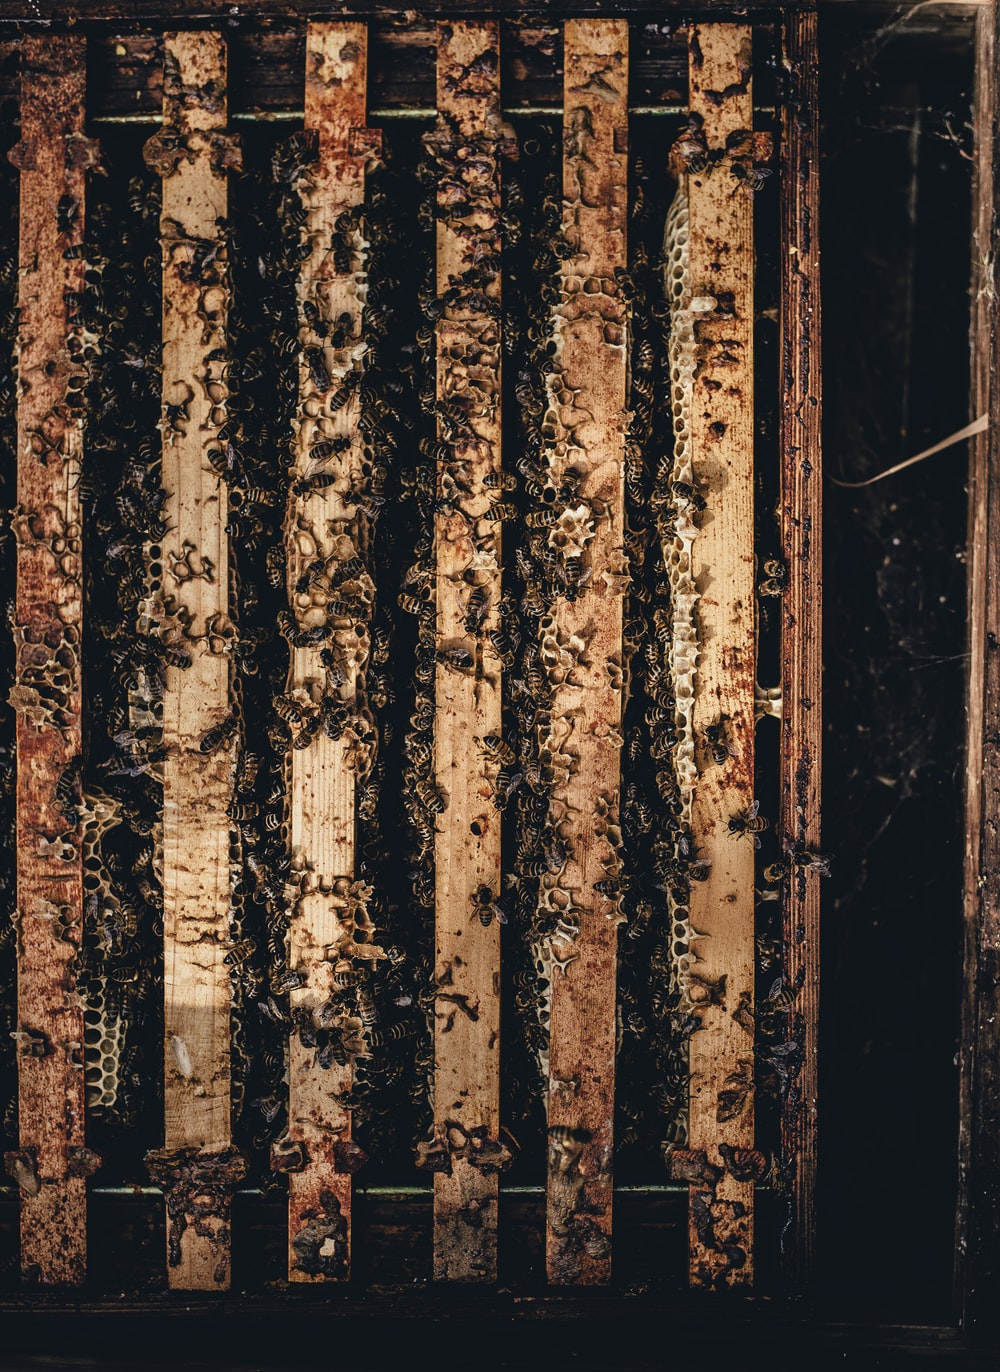 Bees inside the wooden cage